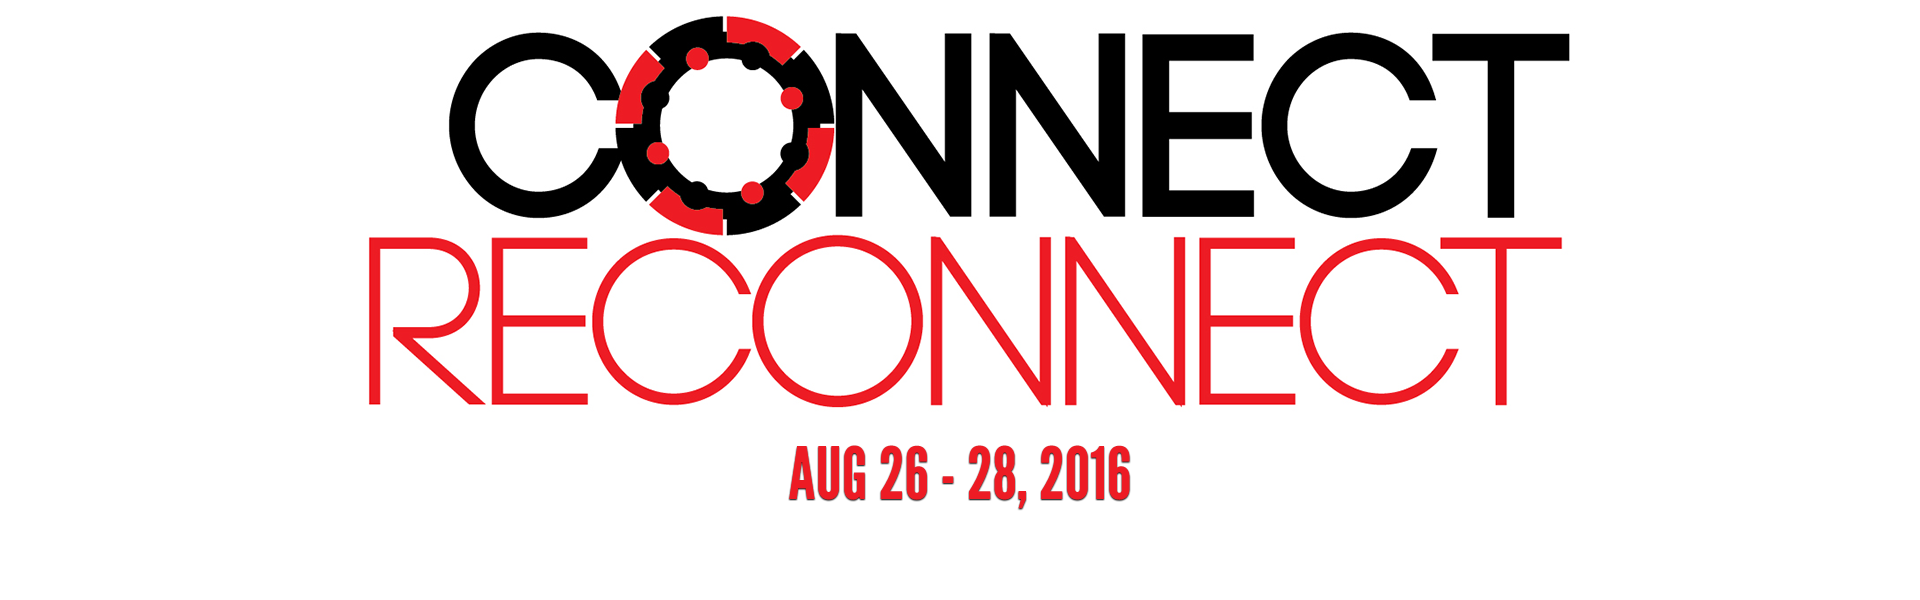 Truth Revealed International Ministries Connect Reconnect Youth Conference 2016